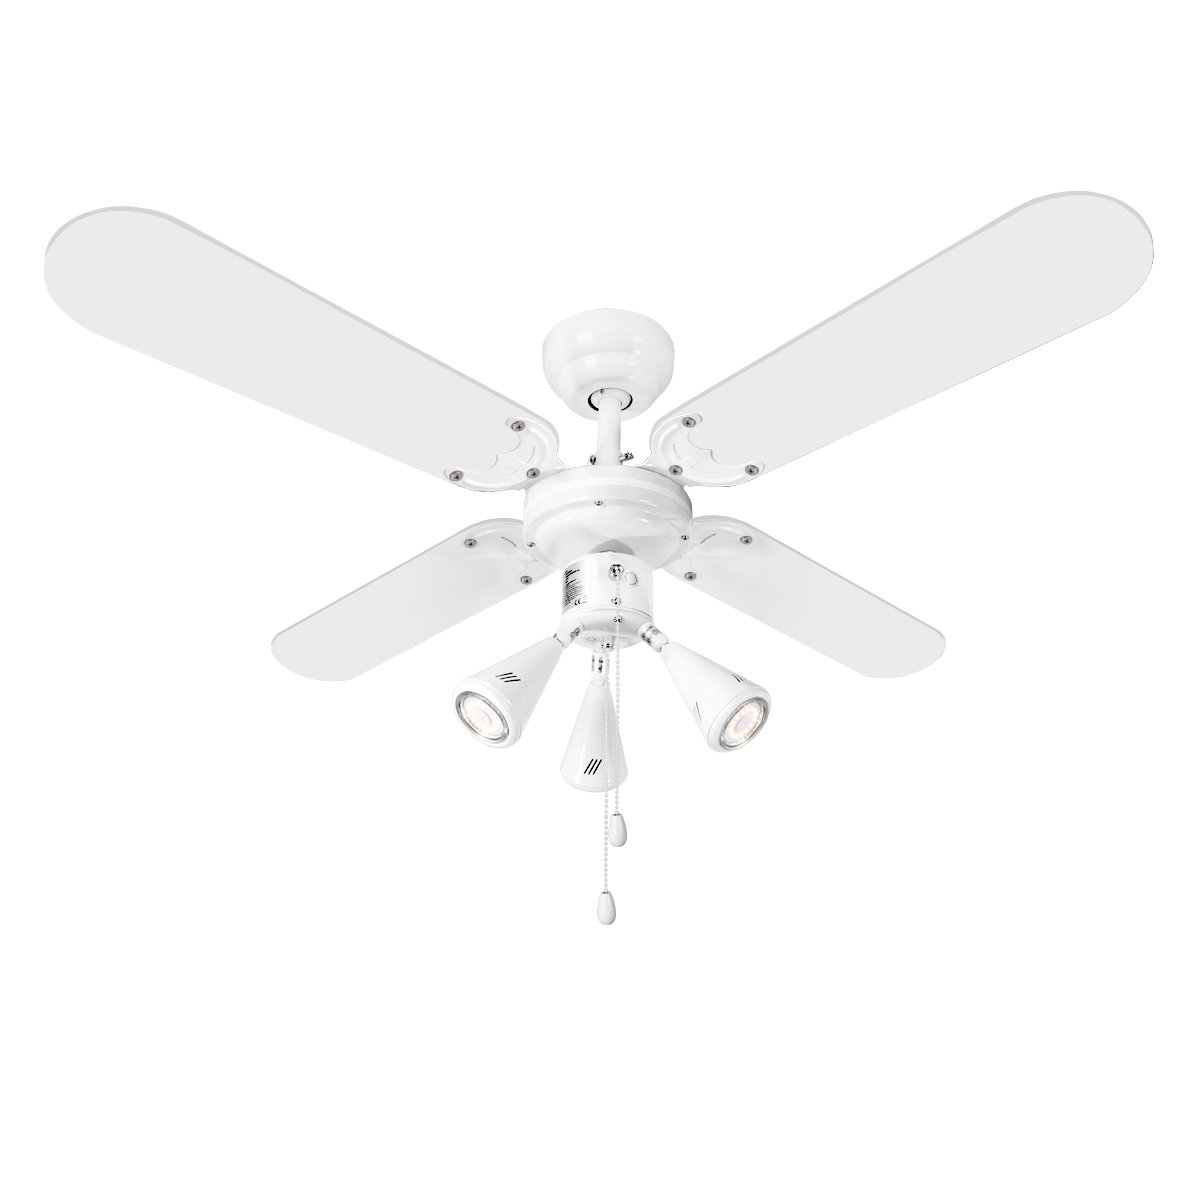 LE 102cm/42' Ceiling Fan with 4 Wooden Blades and 3 GU10 Light Bulb Base Reversible 50W Ceiling Fan for Winter and Summer Use 3 * 50W Max Lighting Bulbs Not Included Lighting EVER 7400003-EU